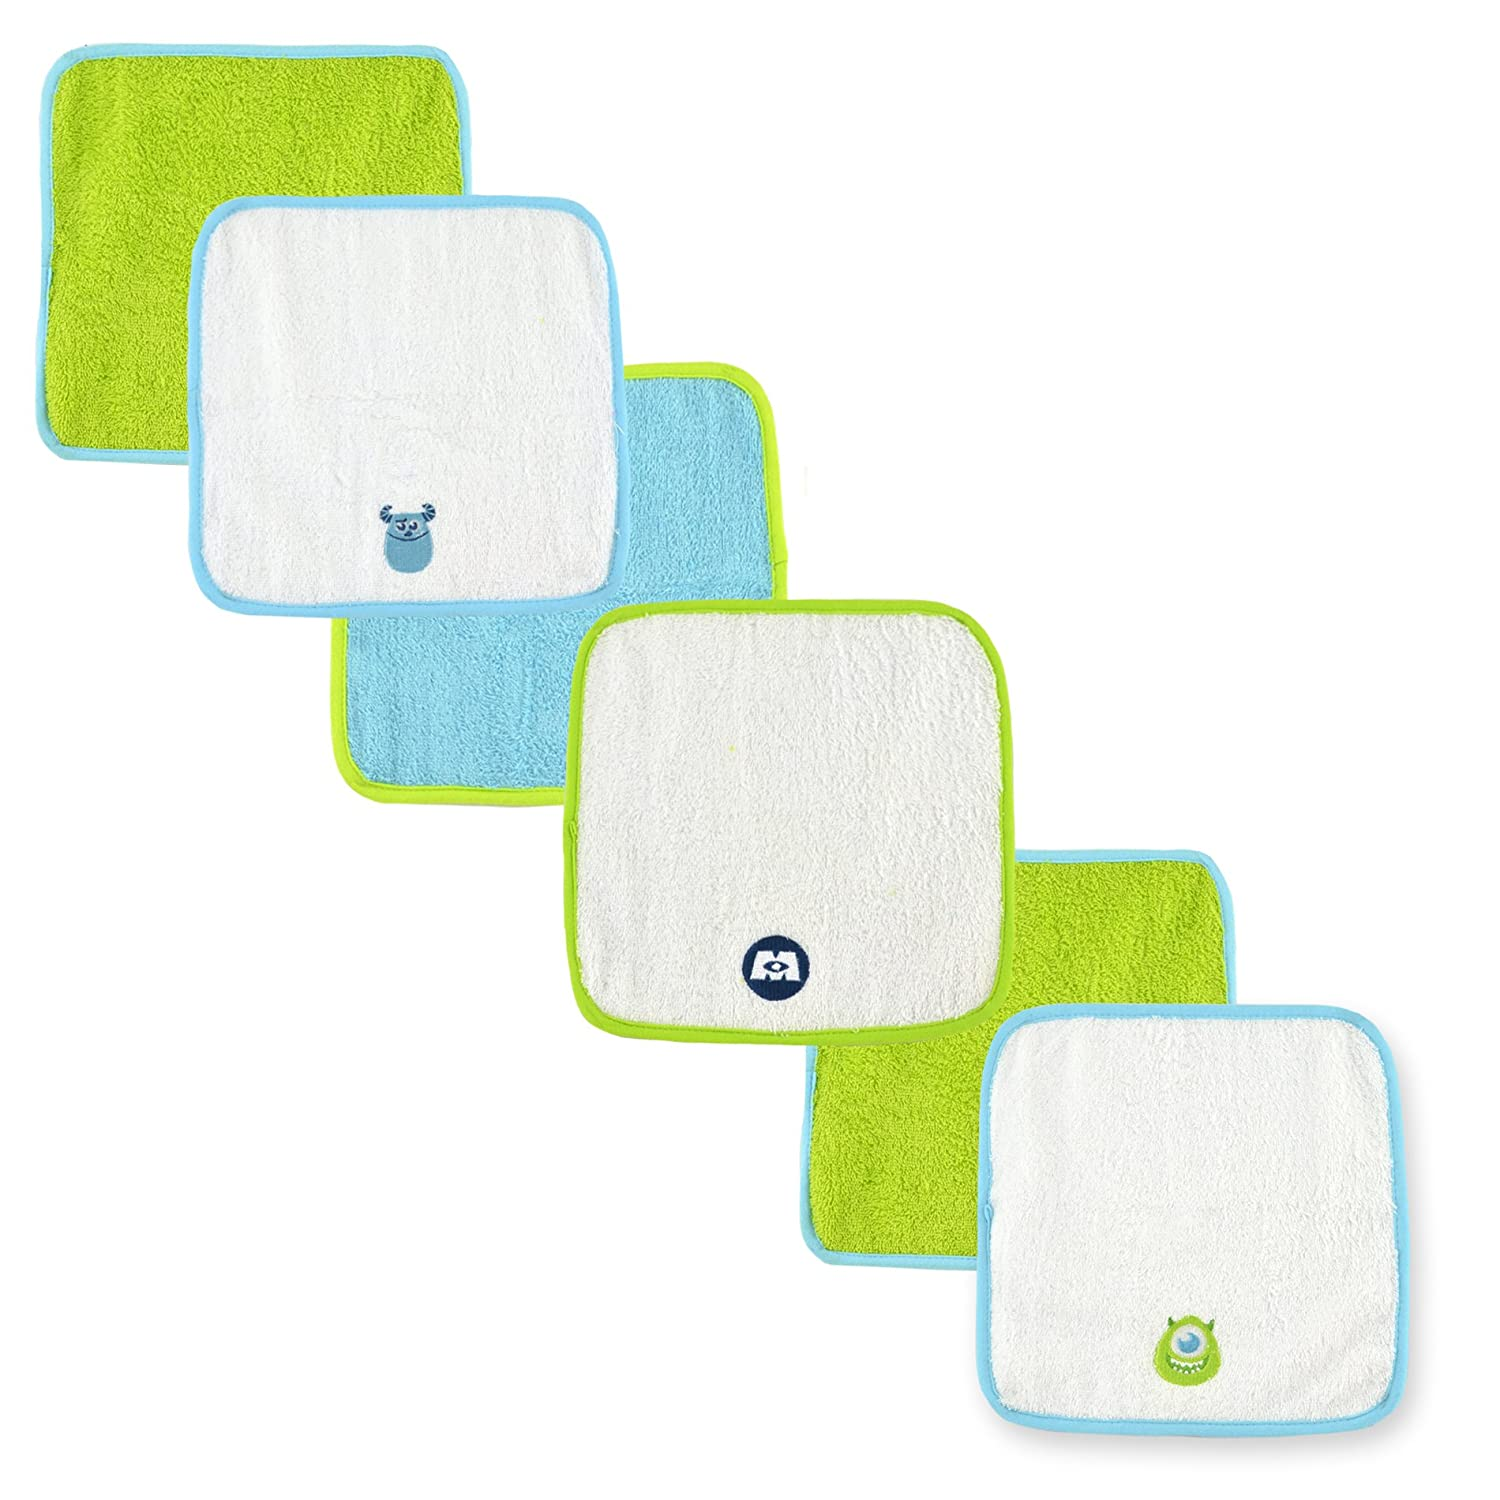 Disney Baby Washcloth Set, Blue/Lime Green Monsters (6 Pack) 53191R